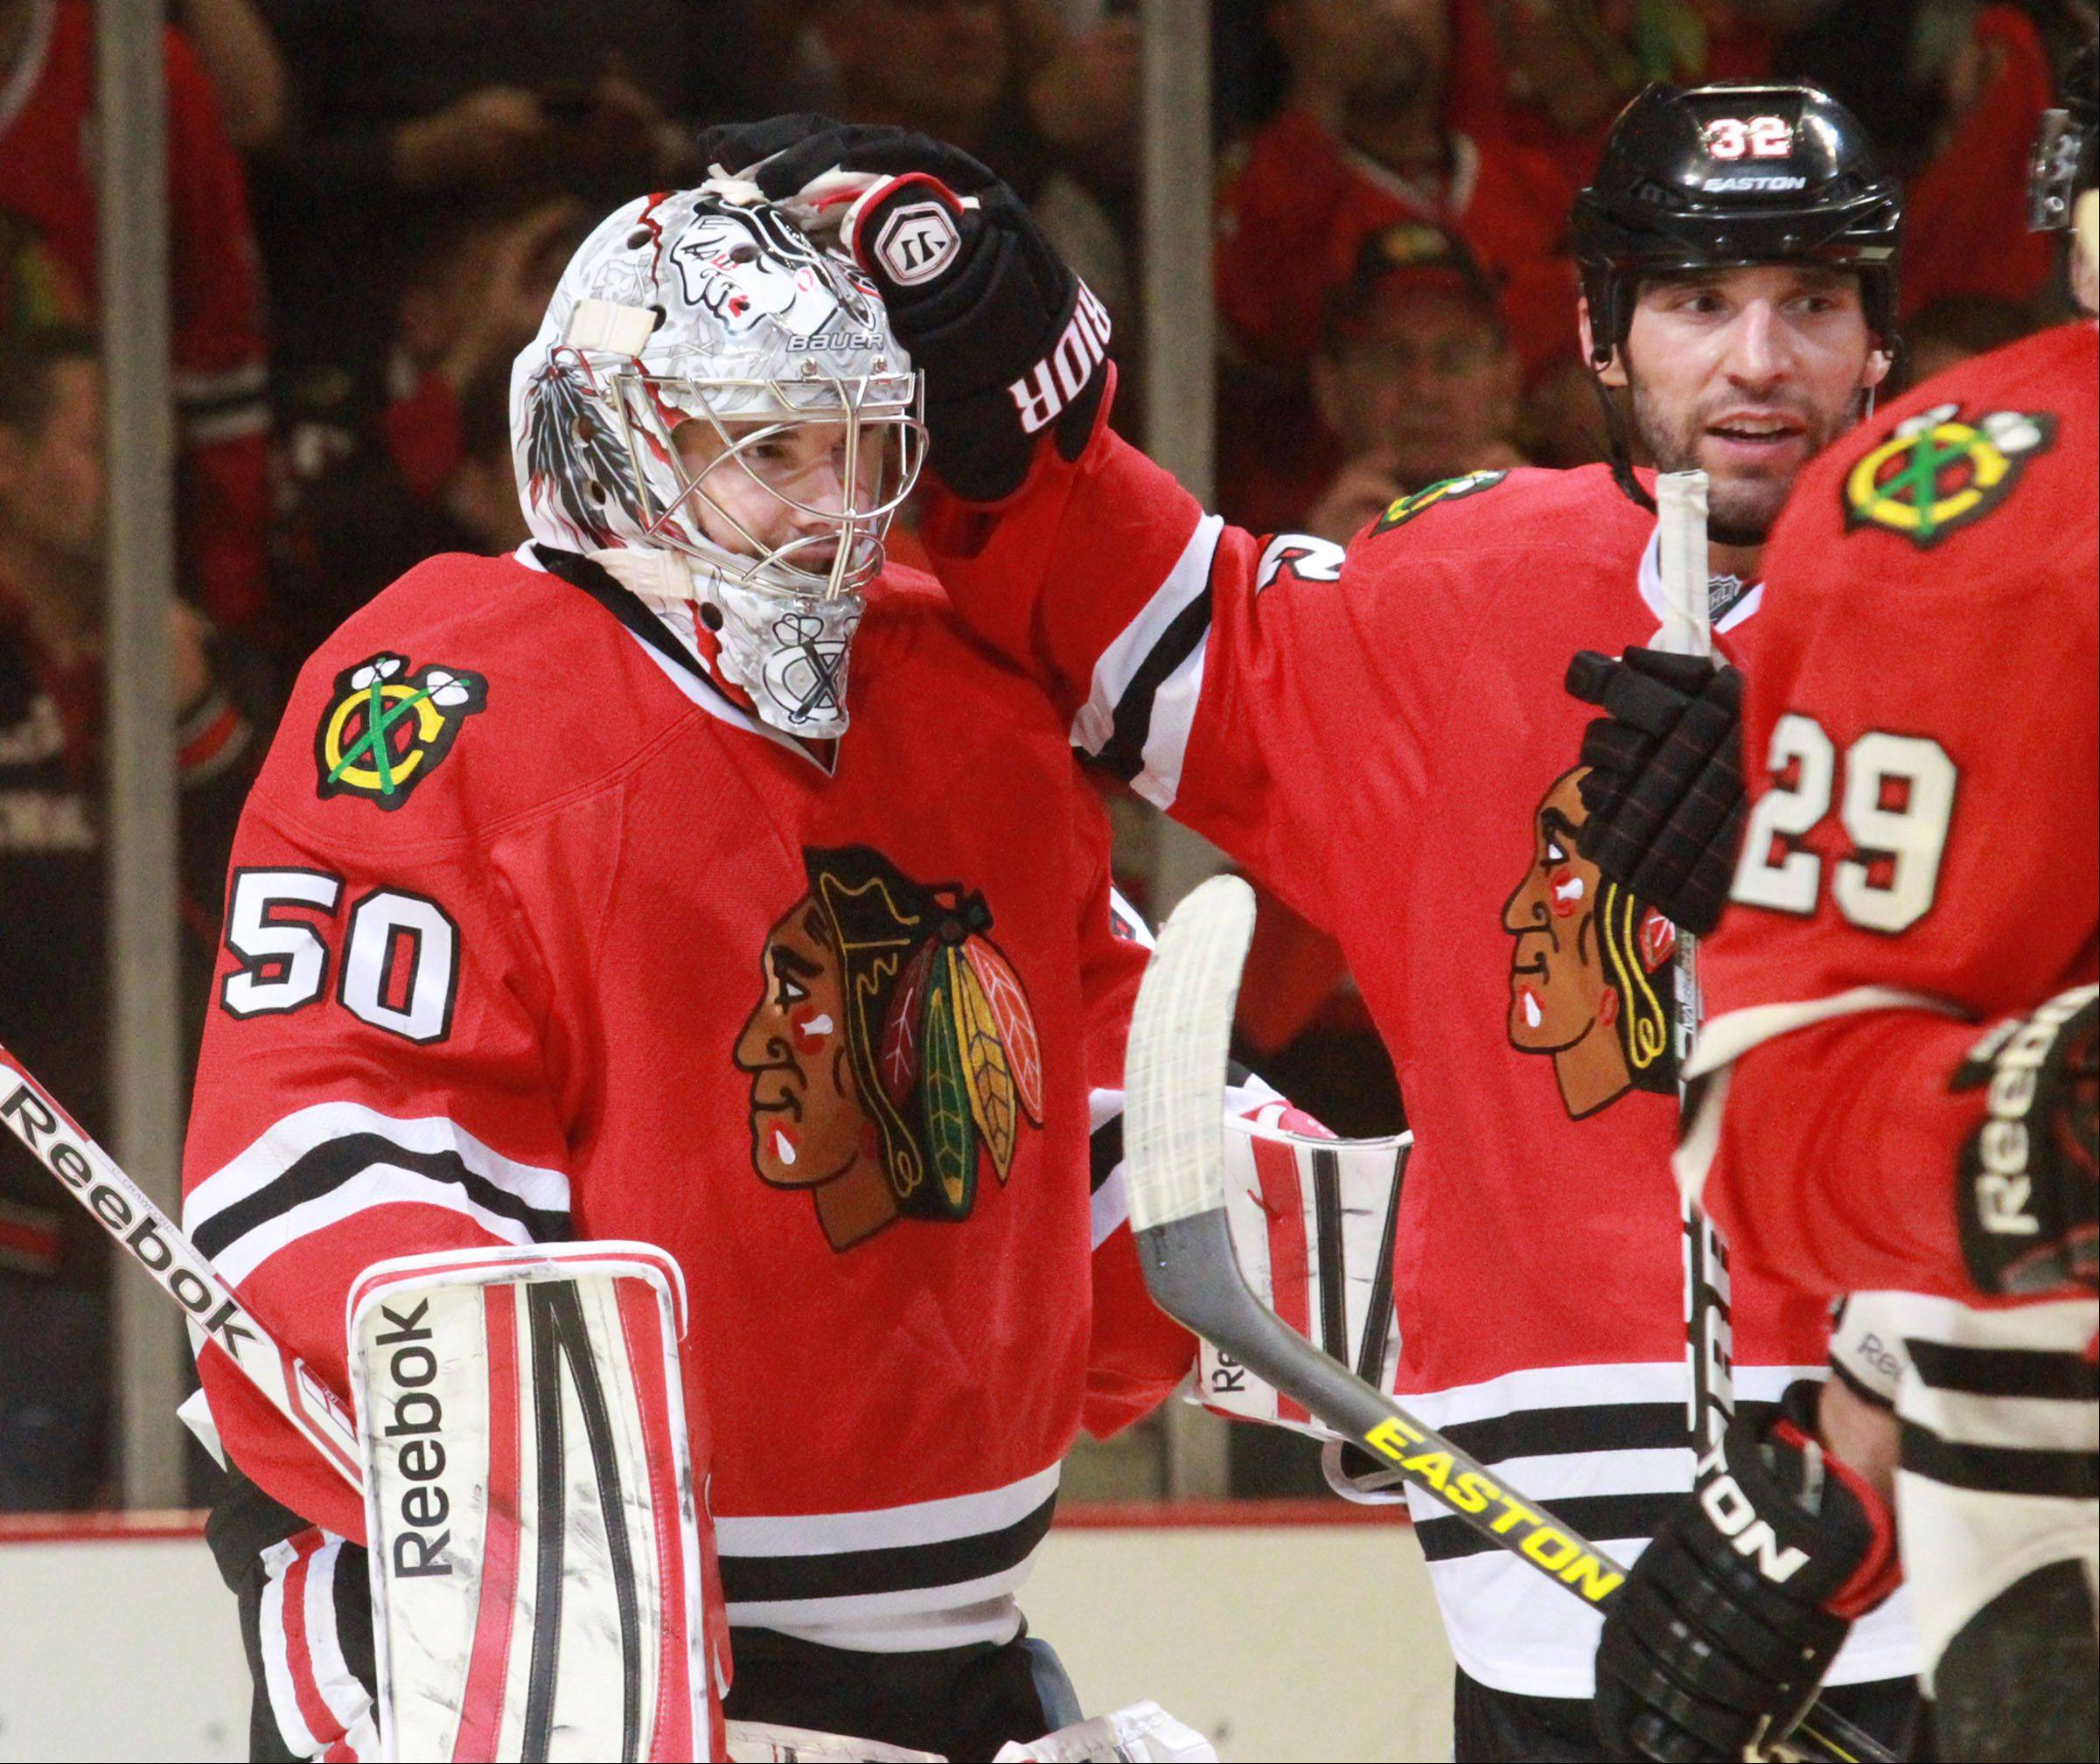 Chicago Blackhawks defenseman Michal Rozsival gives goalie Corey Crawford a hand after winning 5-1 against Minnesota Wild in game 5 of the NHL Western Conference first-round playoff series at the United Center in Chicago on Thursday.